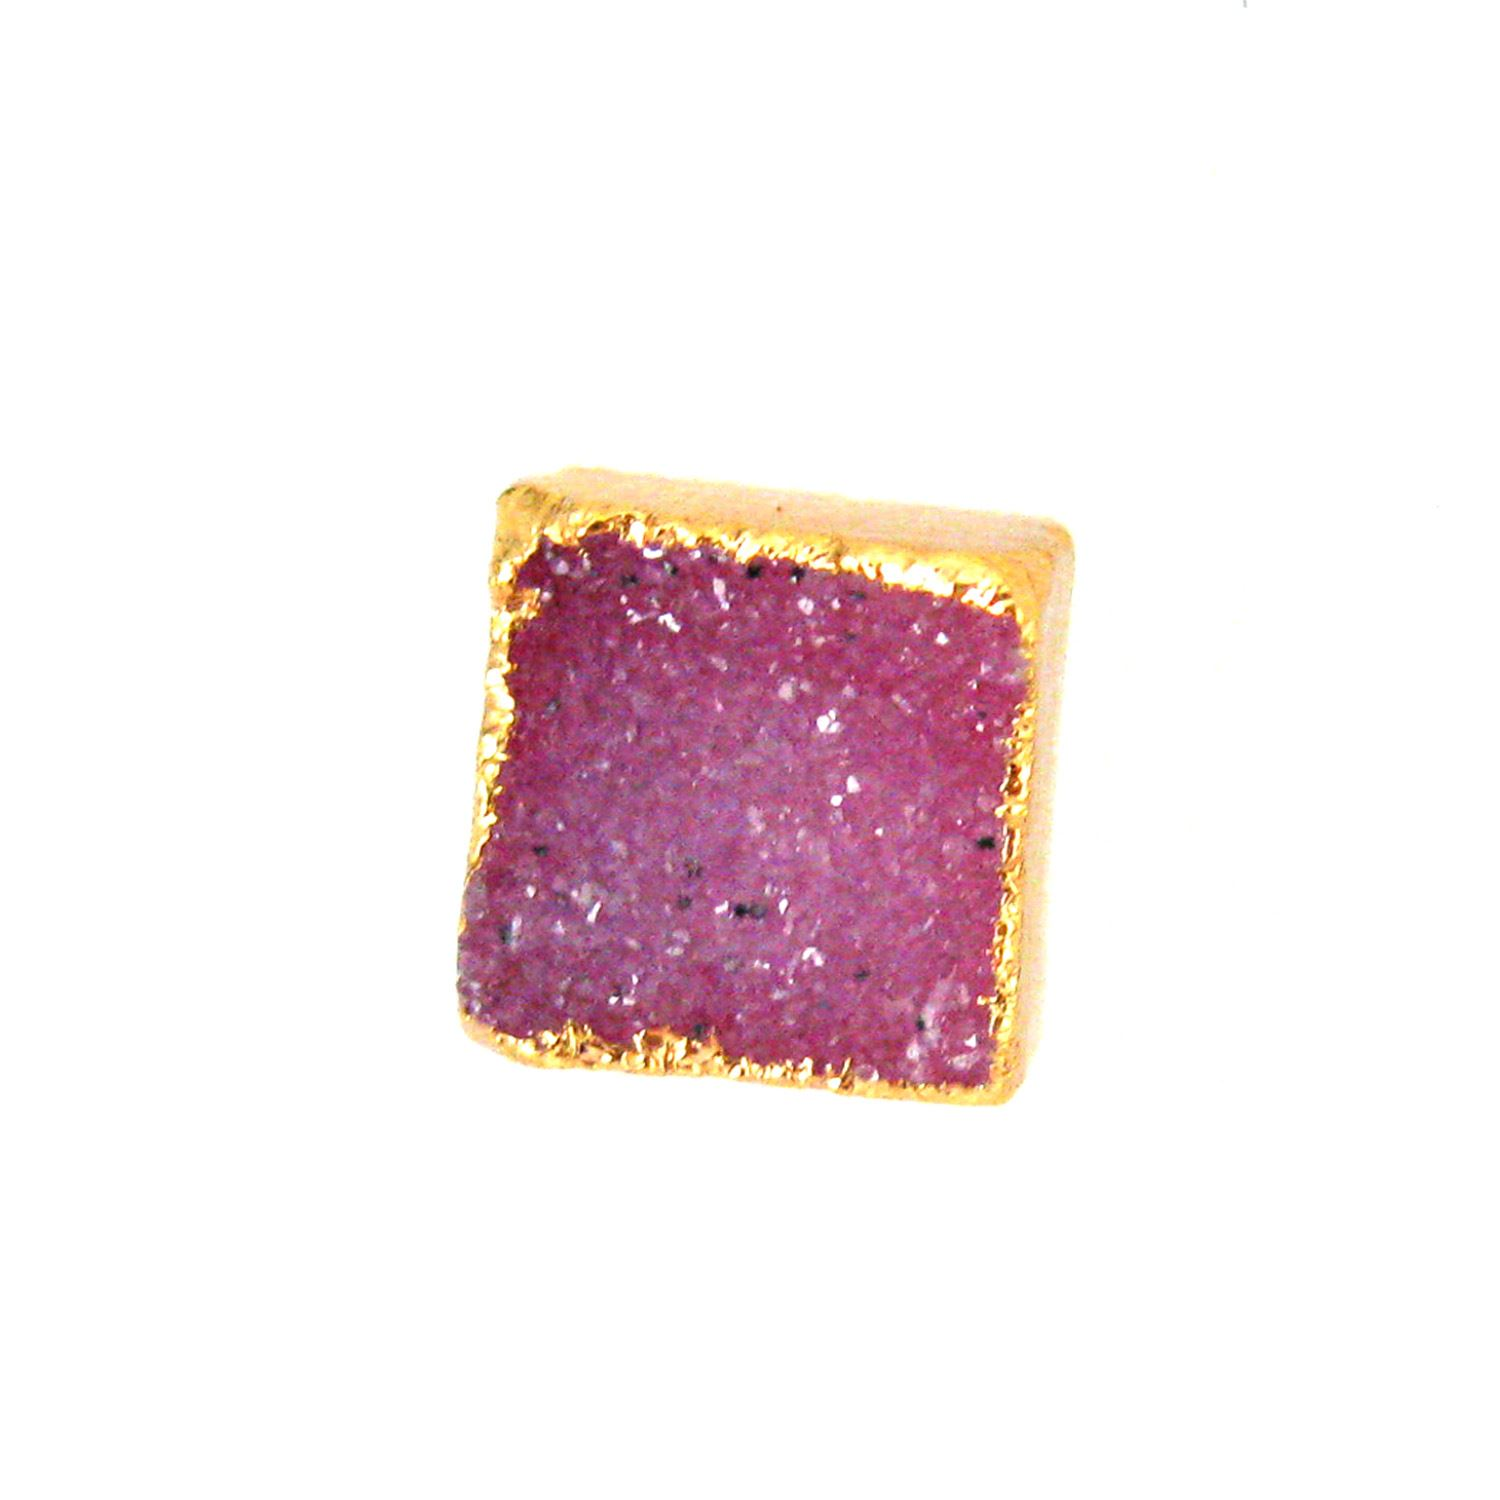 Druzy Earring Studs, Pink Druzy Agate,Gemstone Stud Earrings - Gold plated Sterling Silver- Square 10mm - 1 Pair